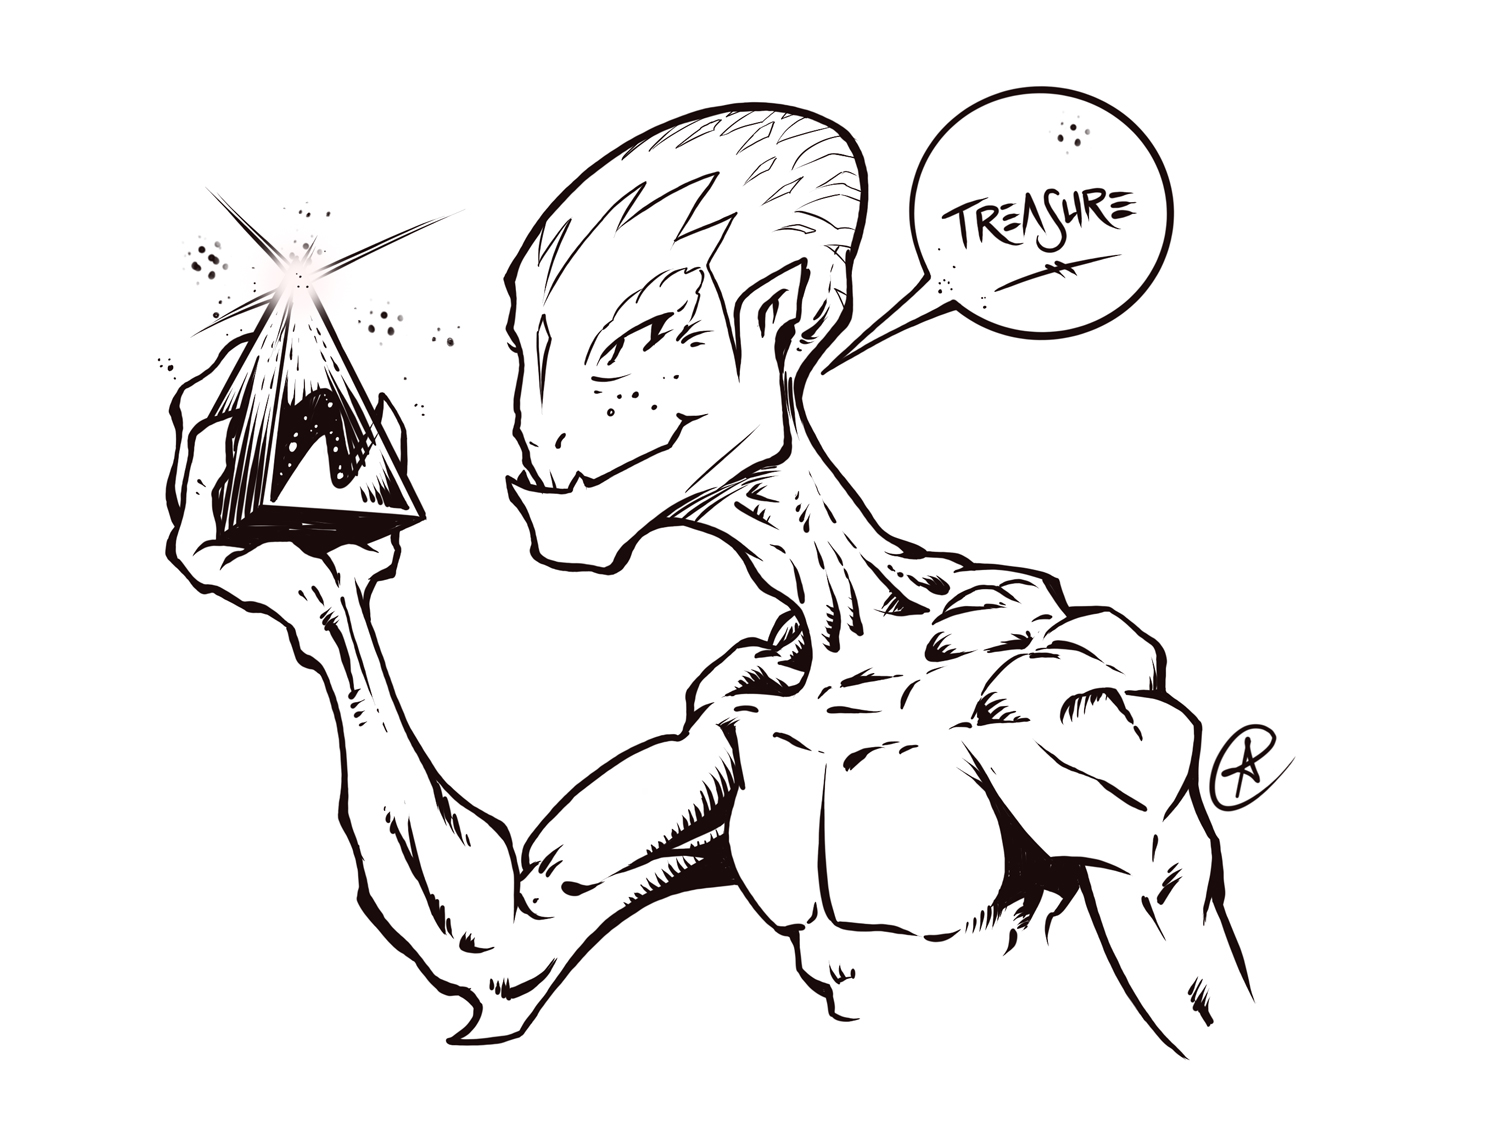 Treasure Alien